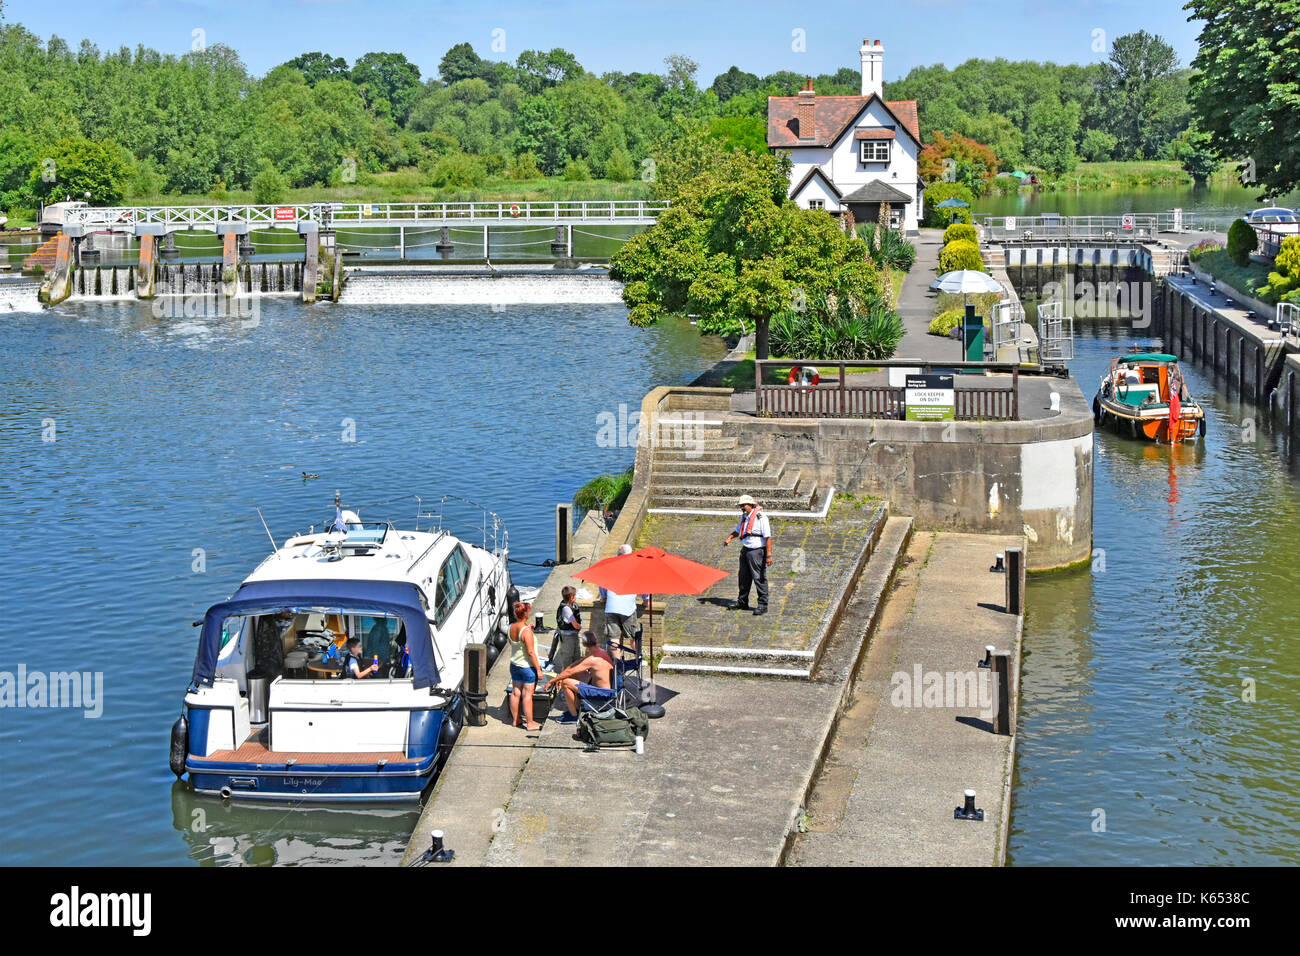 Looking down from above at approach to Goring Lock on River Thames in Oxfordshire with Streatley Berkshire on far side beyond weir - Stock Image